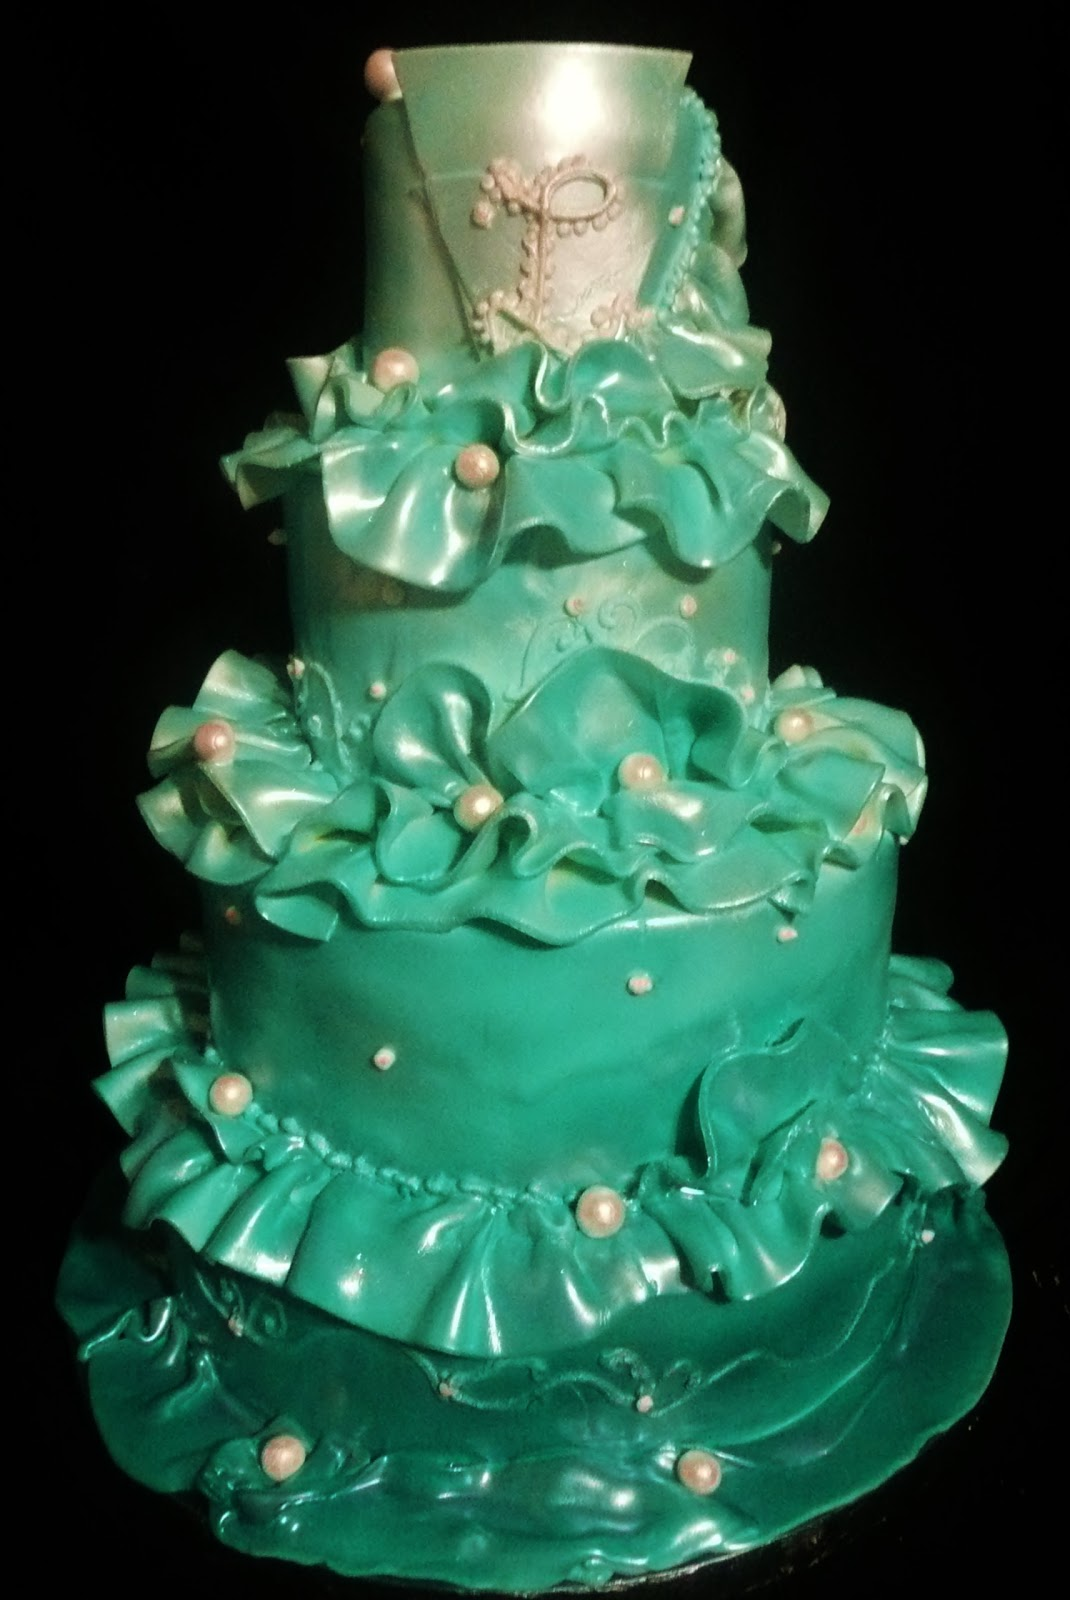 Cake Art By Des : Baking with Roxana s Cakes: Art Deco Inspiration Birthday Cake